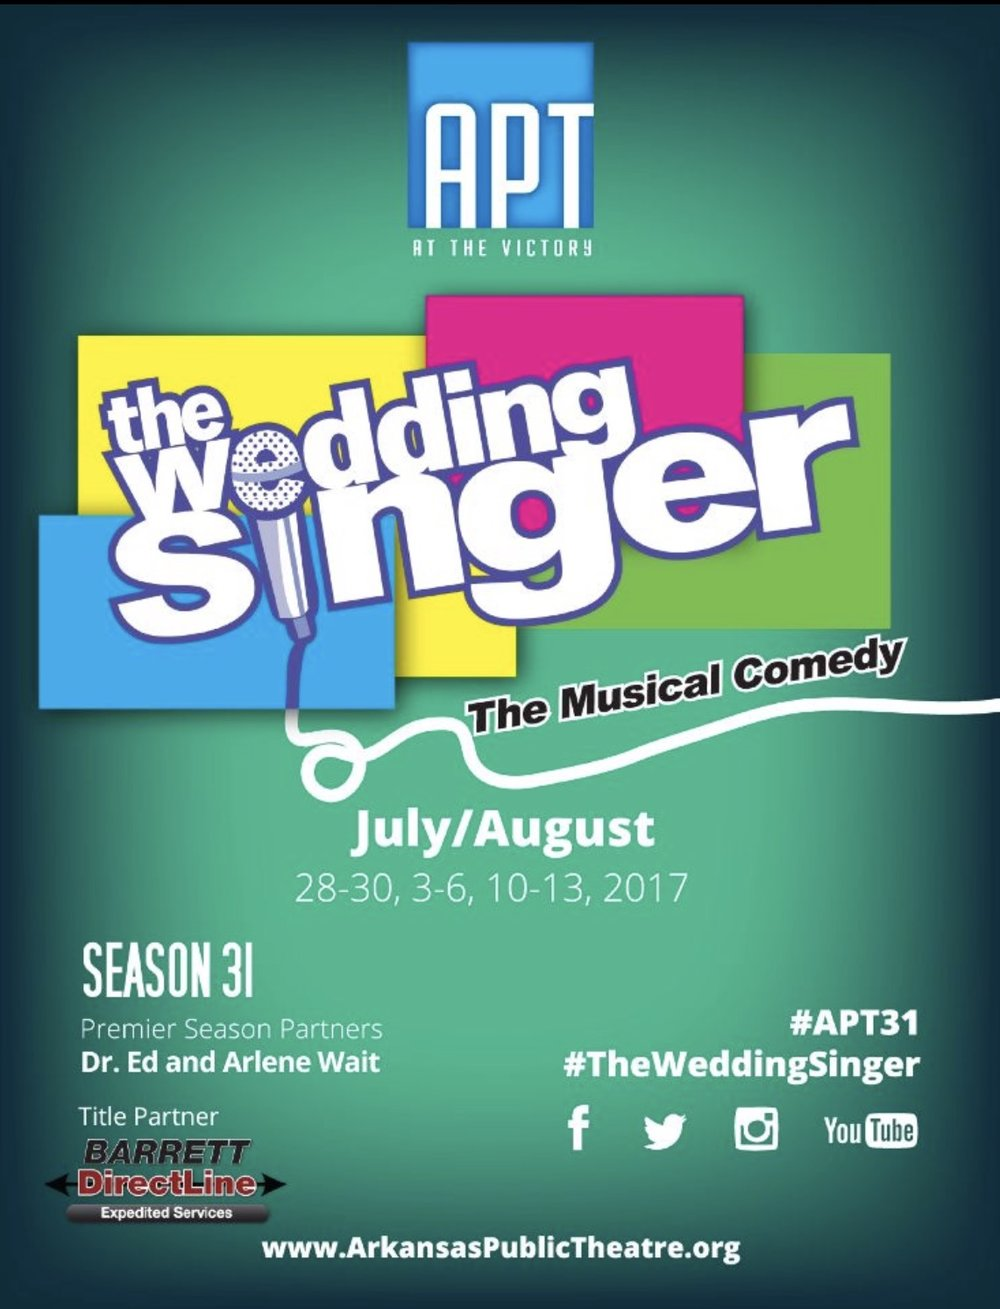 Season 31 | THE WEDDING SINGER